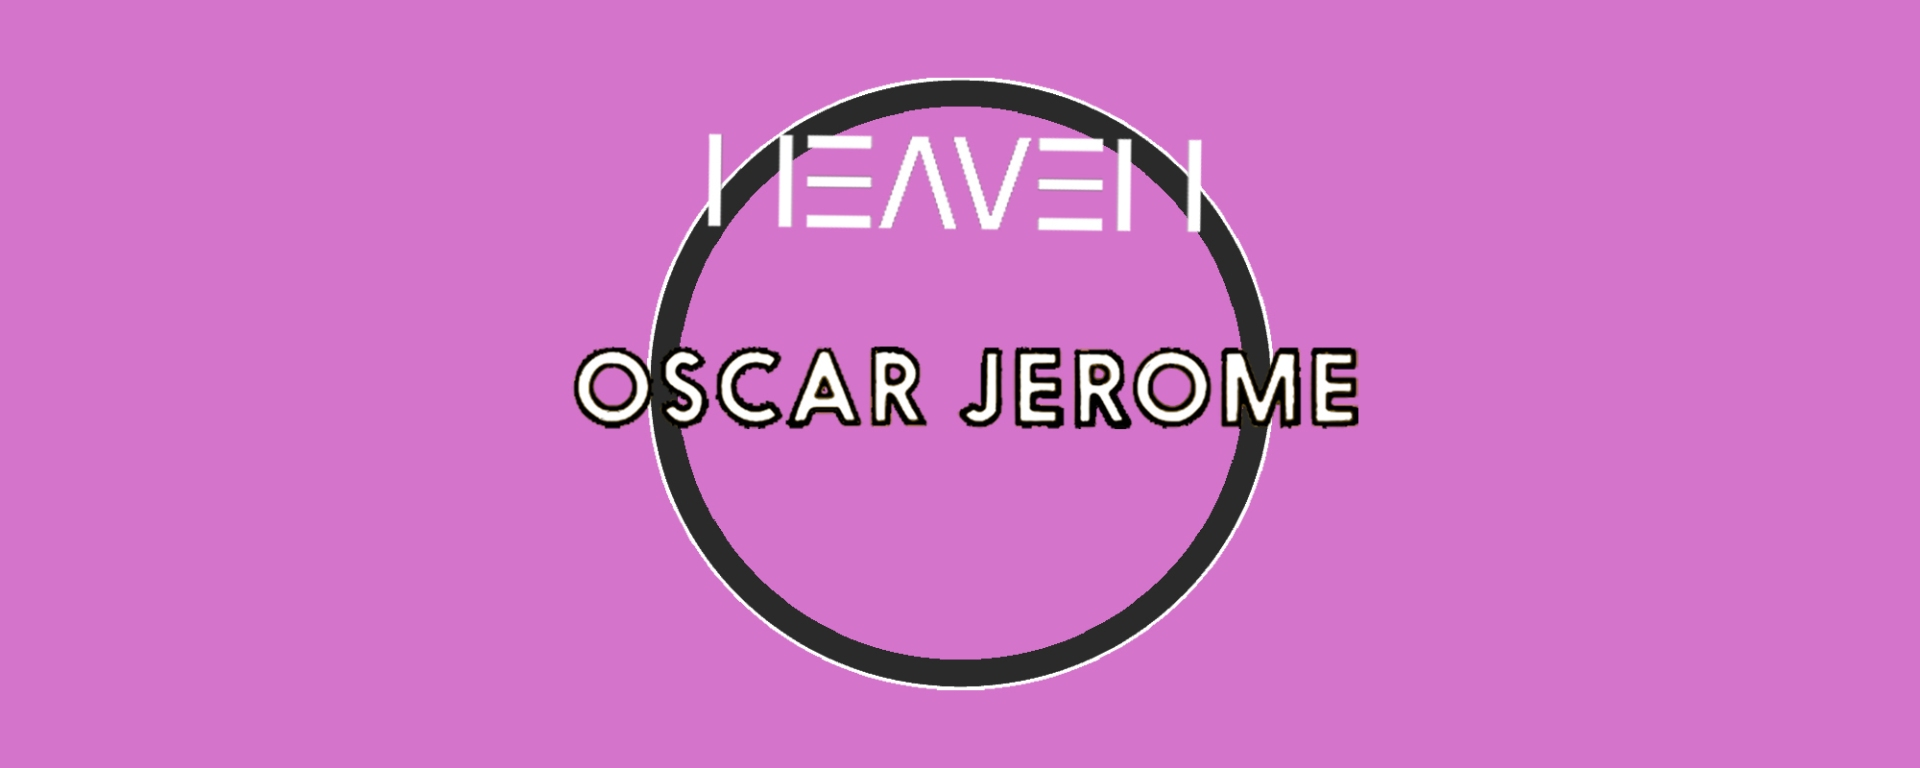 Oscar Jerome at Heaven London